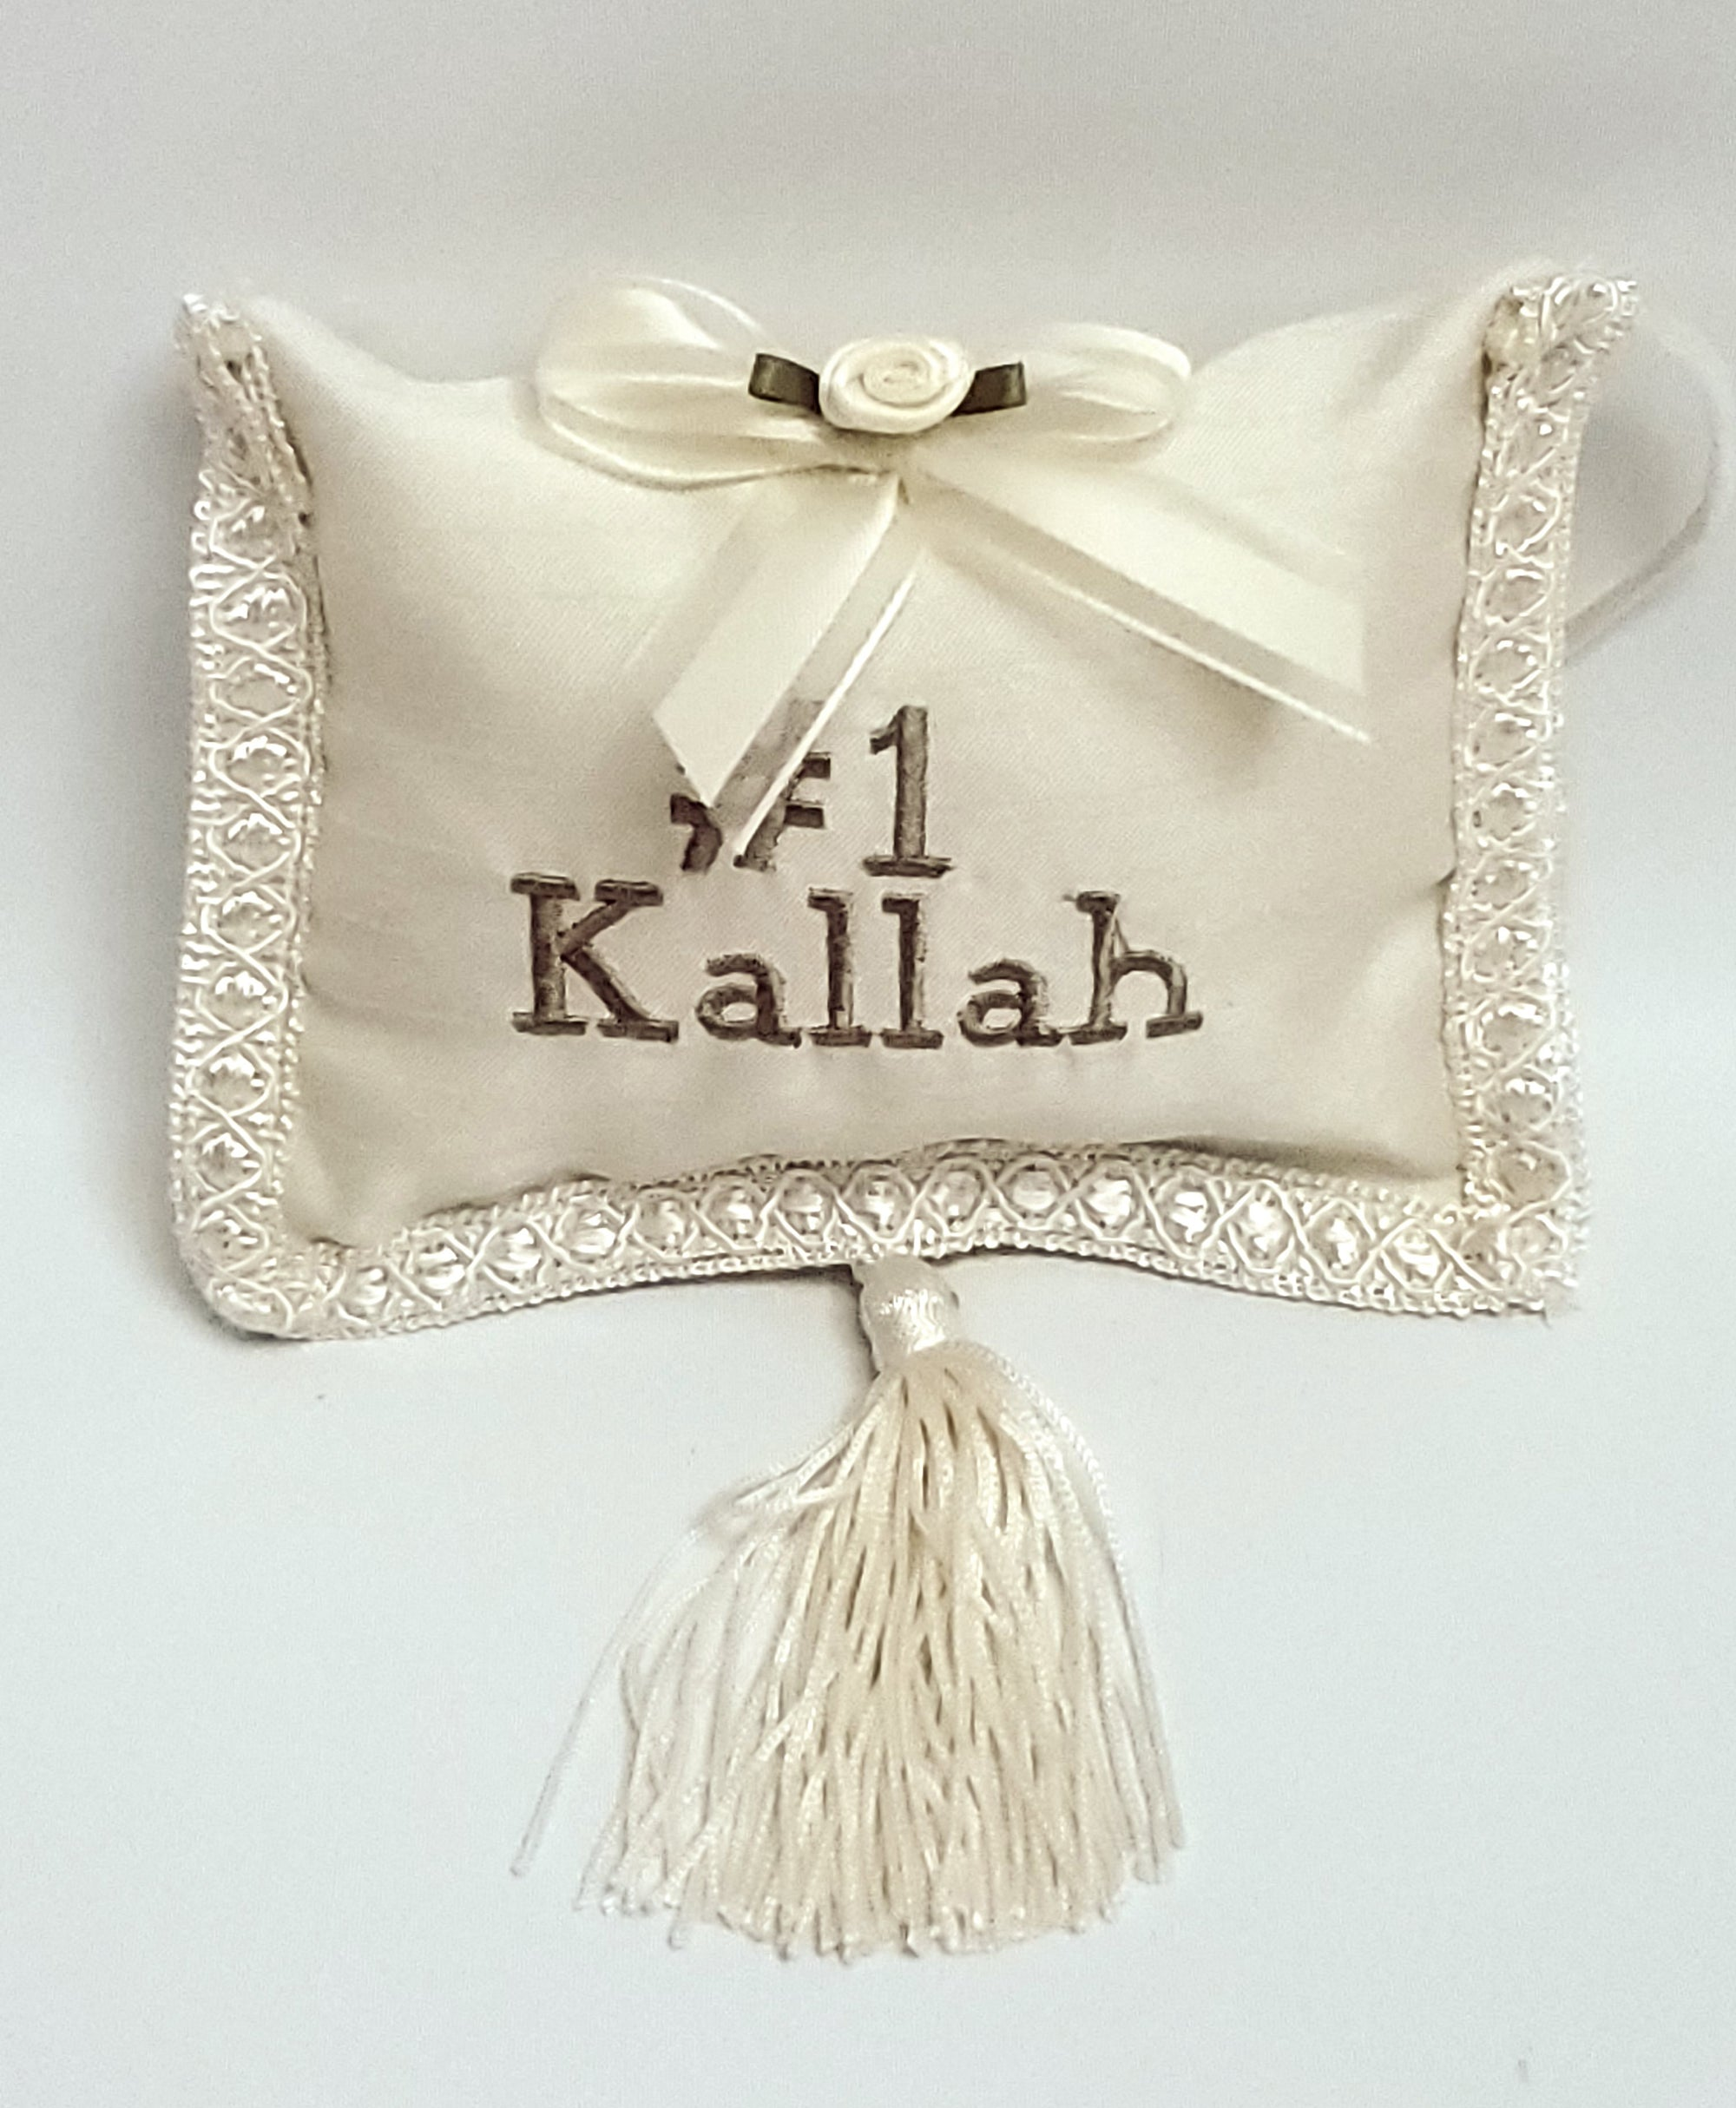 #1 Kallah Pillow withTassel